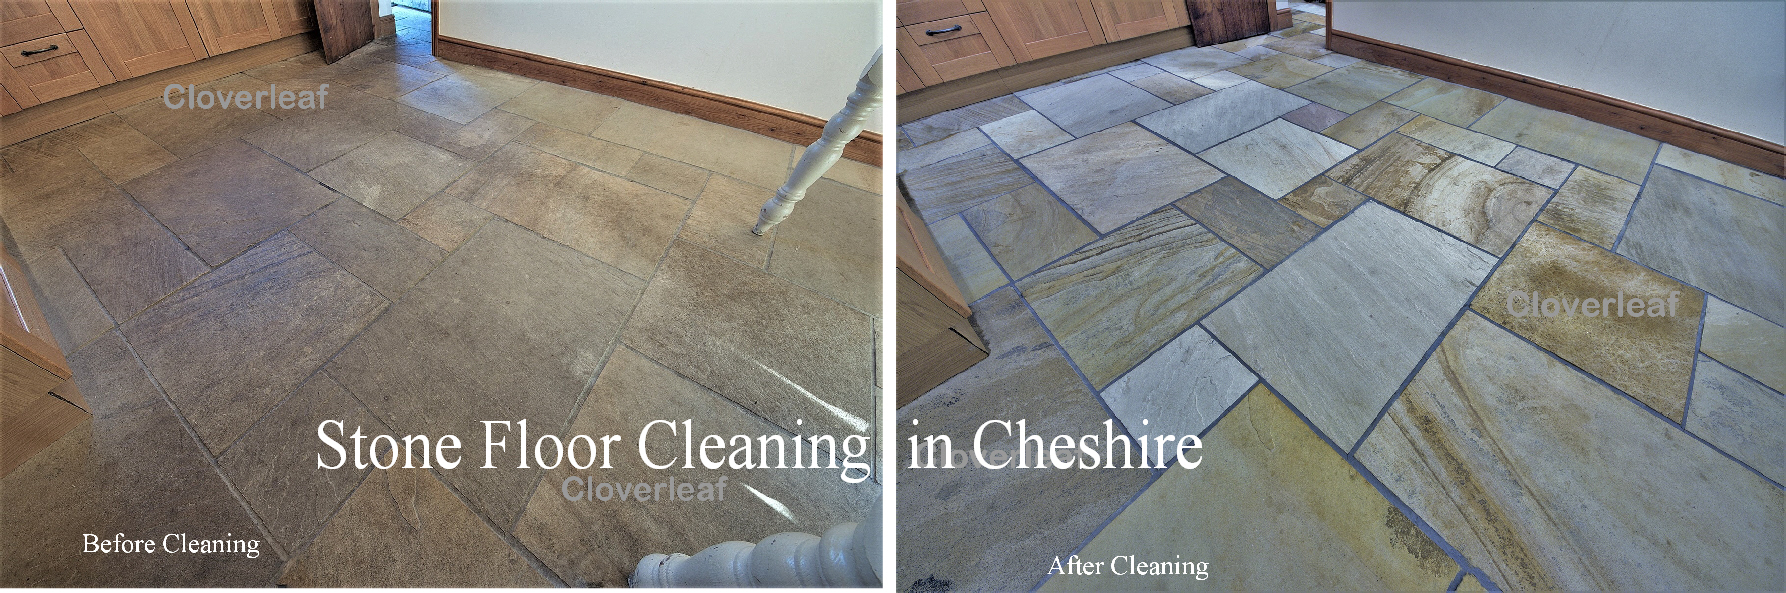 stone floor cleaning cheshire